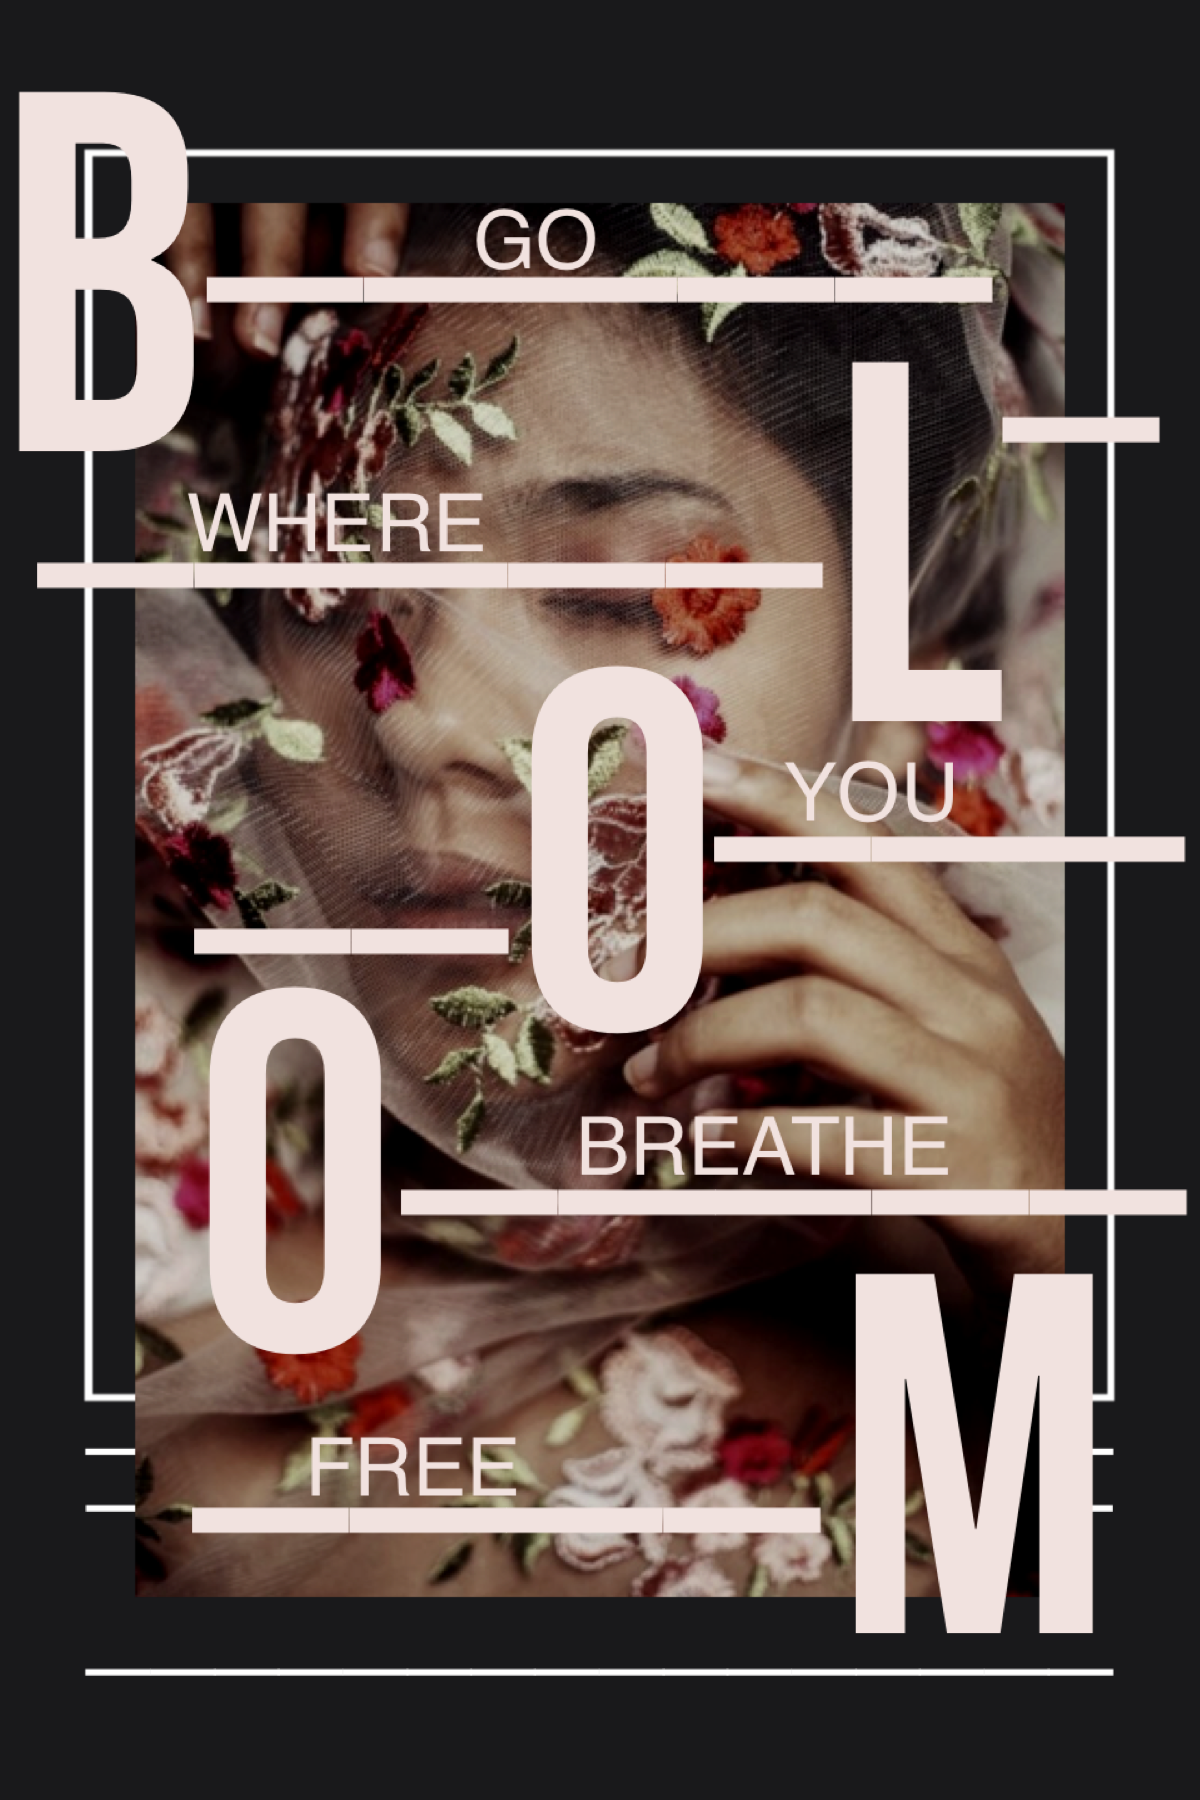 bloom 🌷  I was scrolling through pinterest and saw some art I felt so inspired I decided to recreate it my own way 🤩